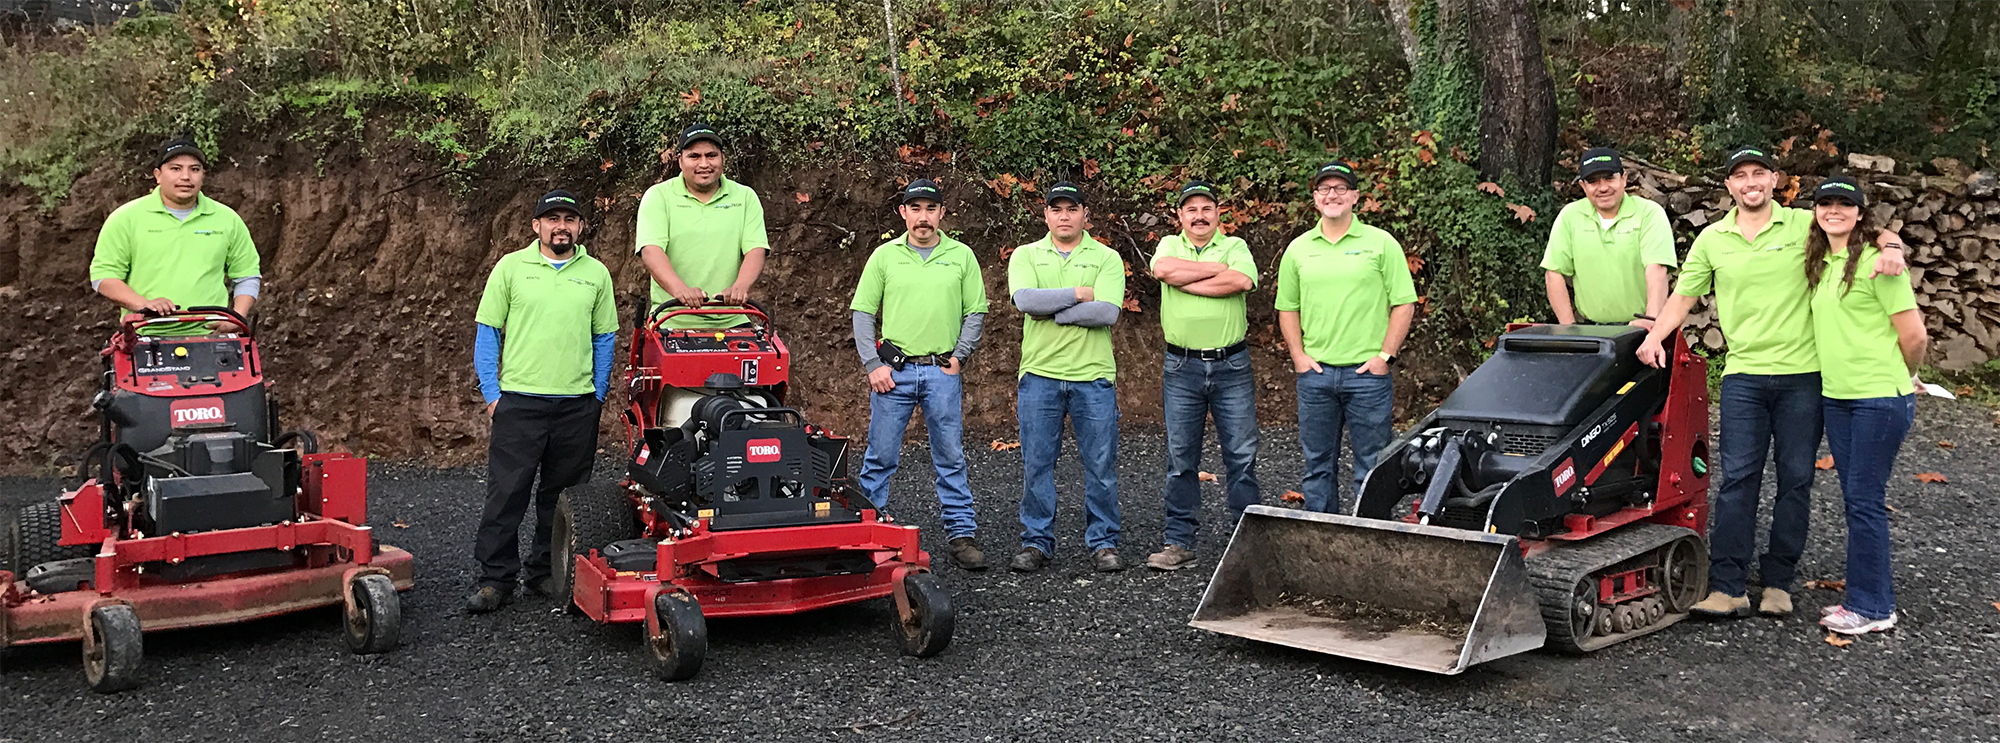 Earth Tech Landscaping Team with Lawn Mowers and Equipment